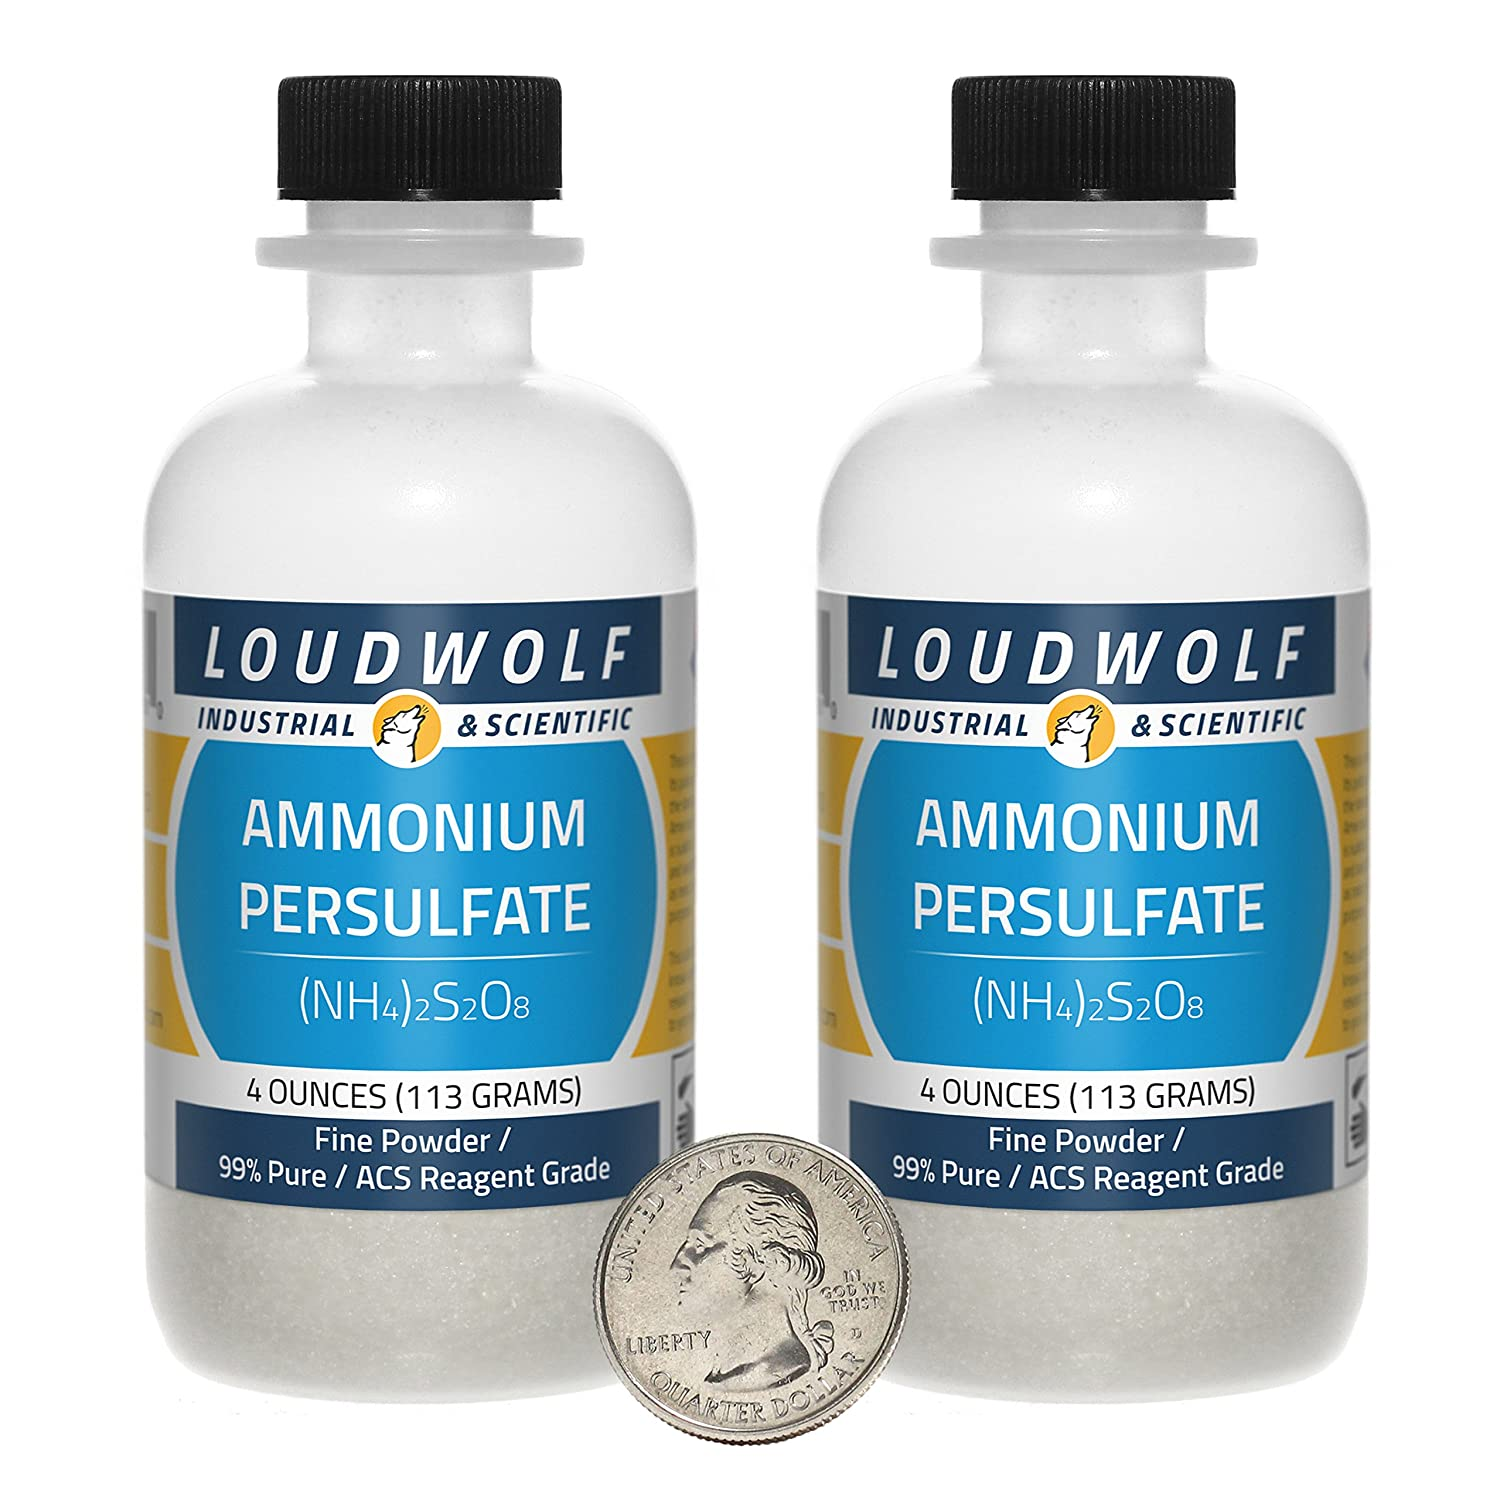 Ammonium Persulfate / Dry Crystals / 8 Ounces / 98% Pure / Copper Etchant / SHIPS FAST FROM USA